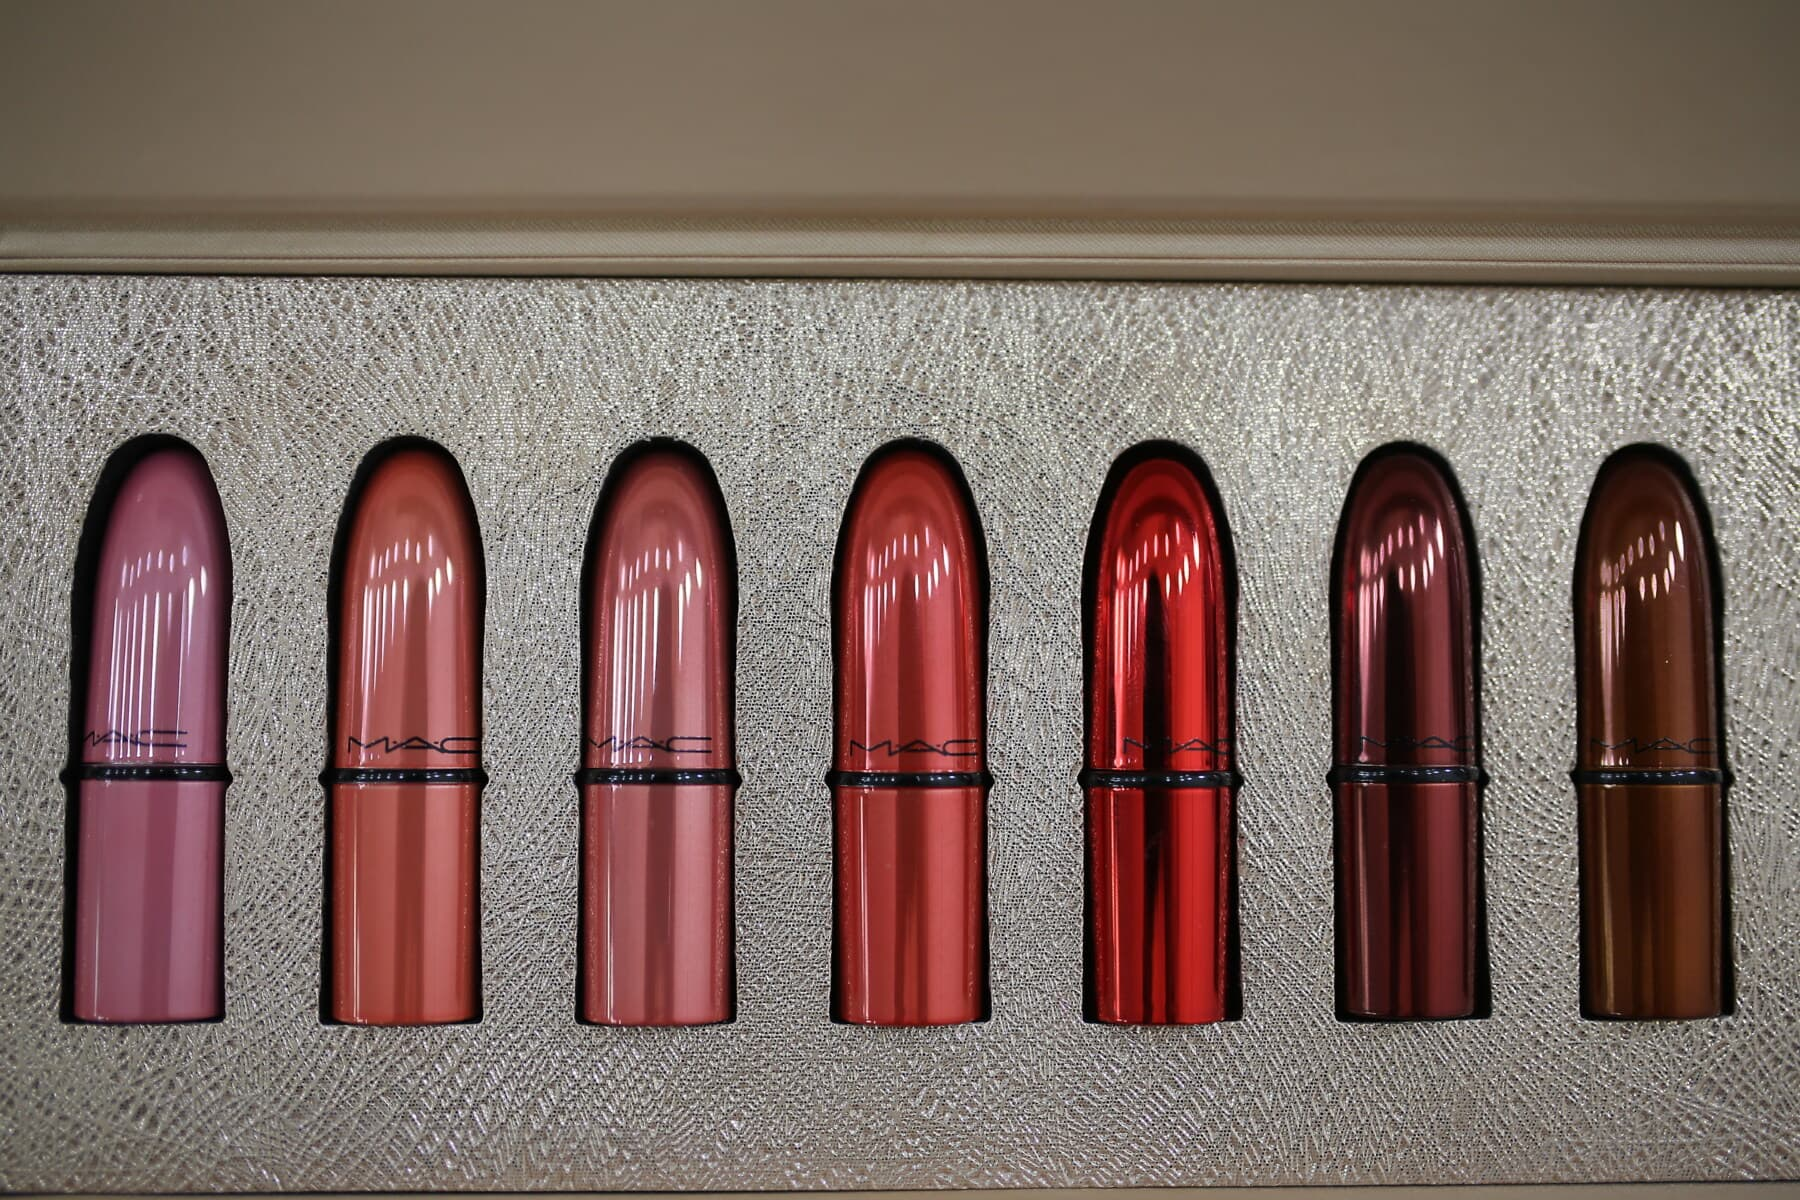 reddish, red, lipstick, cosmetics, makeup, merchandise, close-up, products, shining, cosmetic